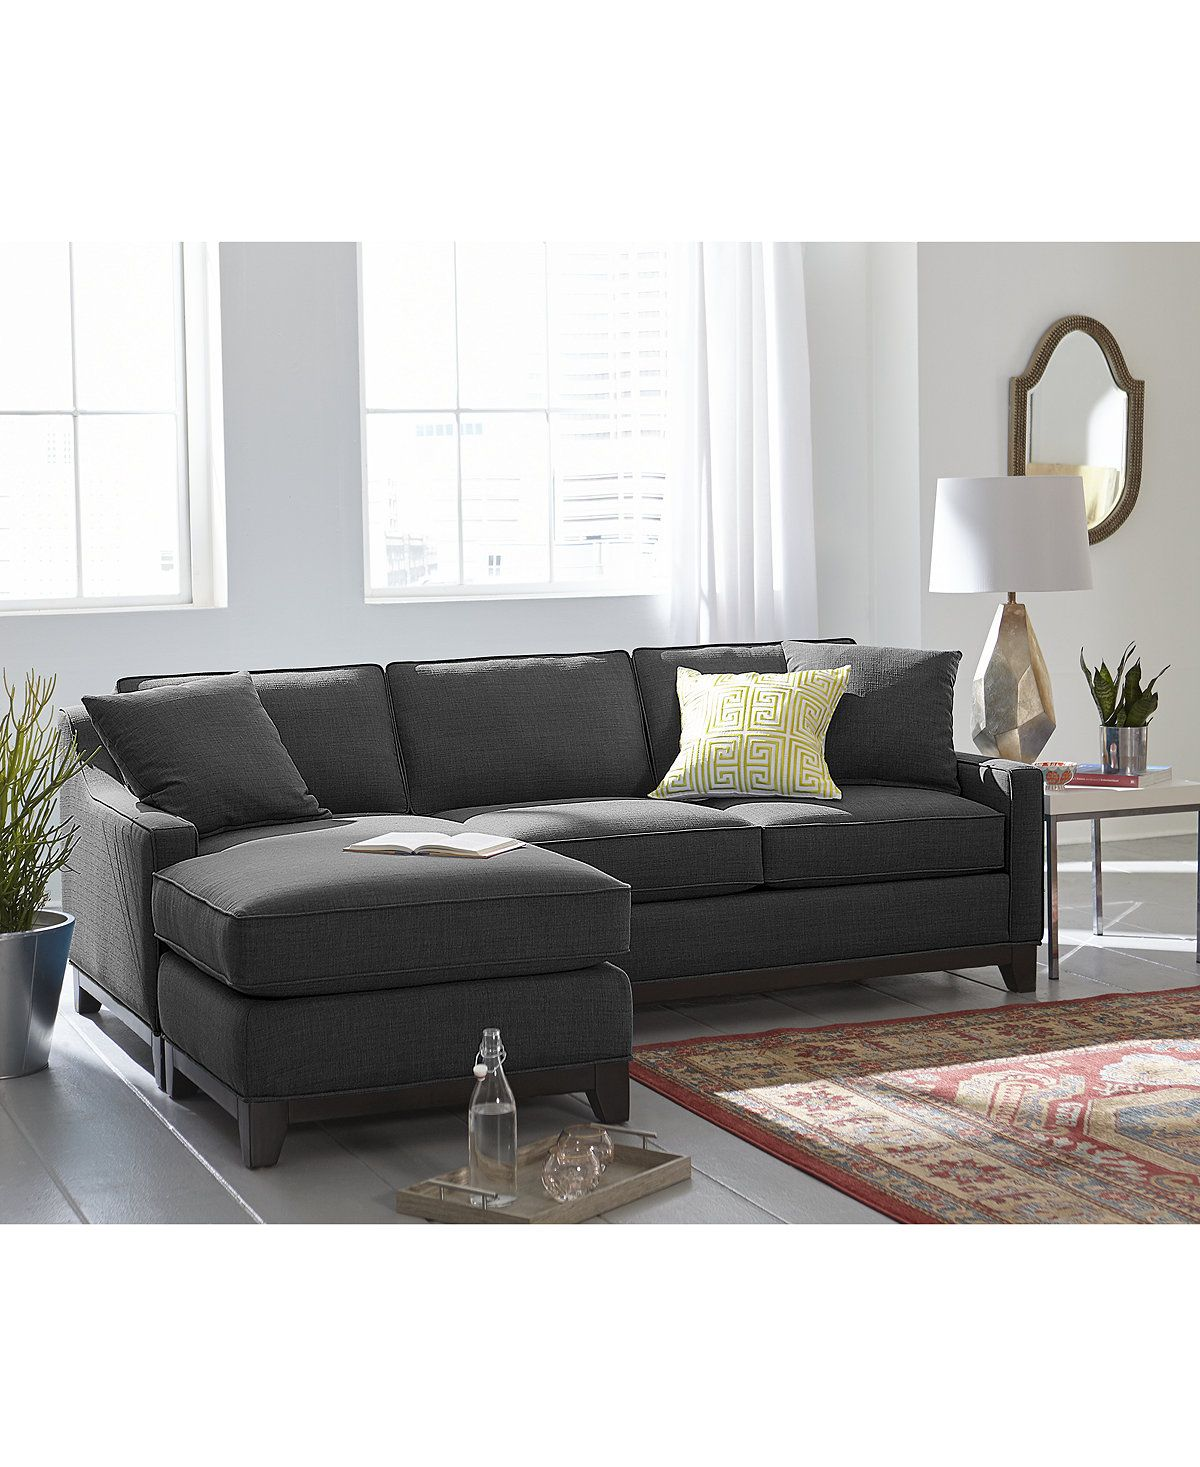 Keegan fabric 2 piece sectional sofa couches s 699